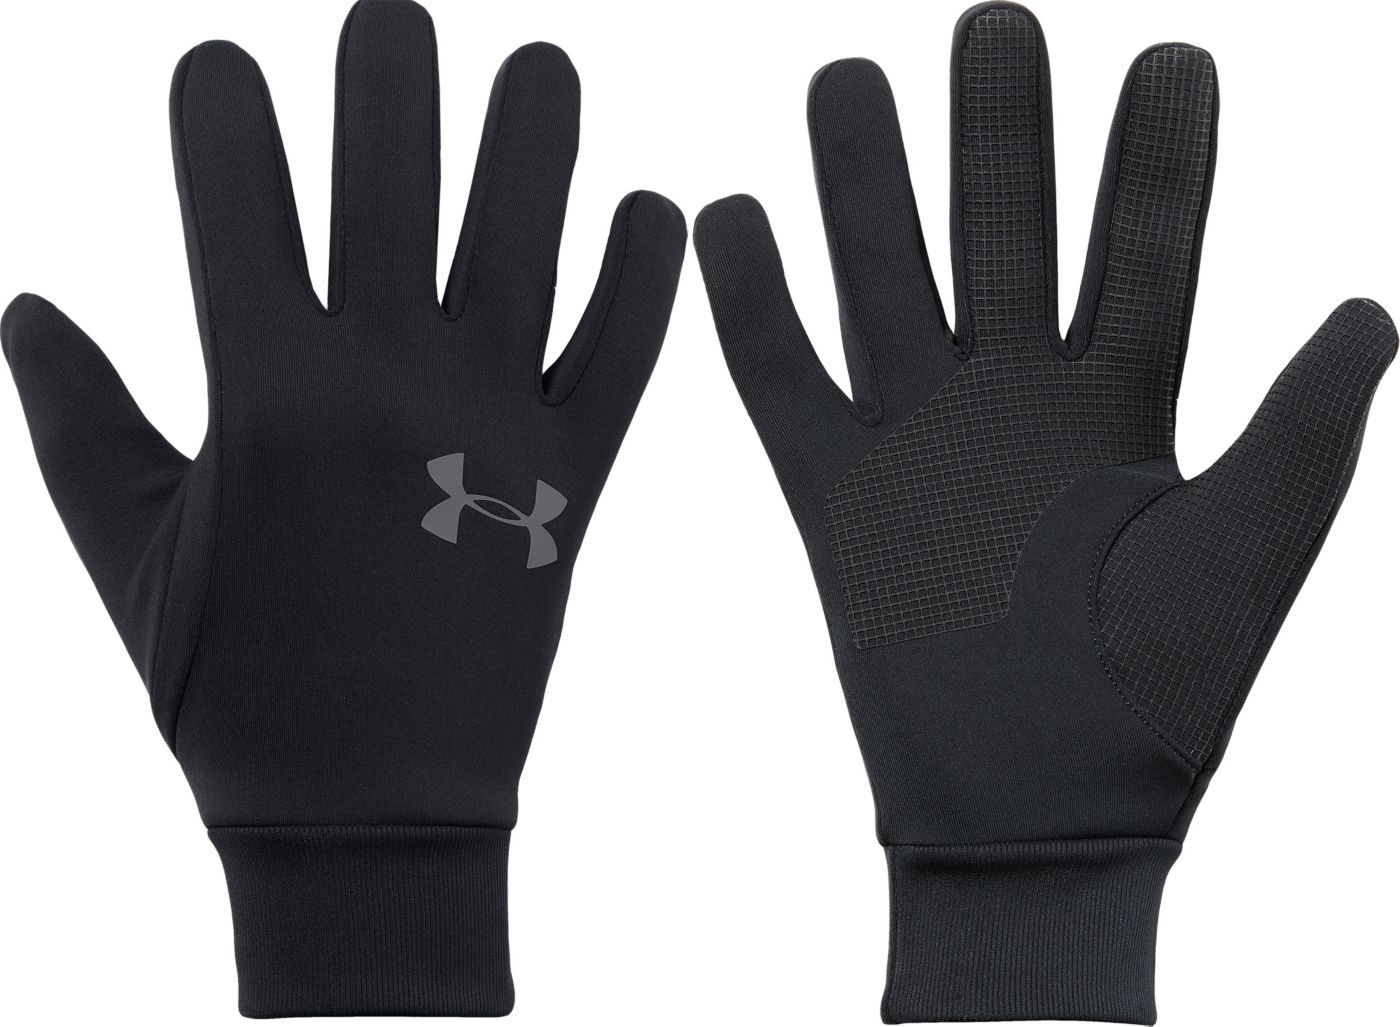 Under Armour Men's Armour Liner Gloves 2.0